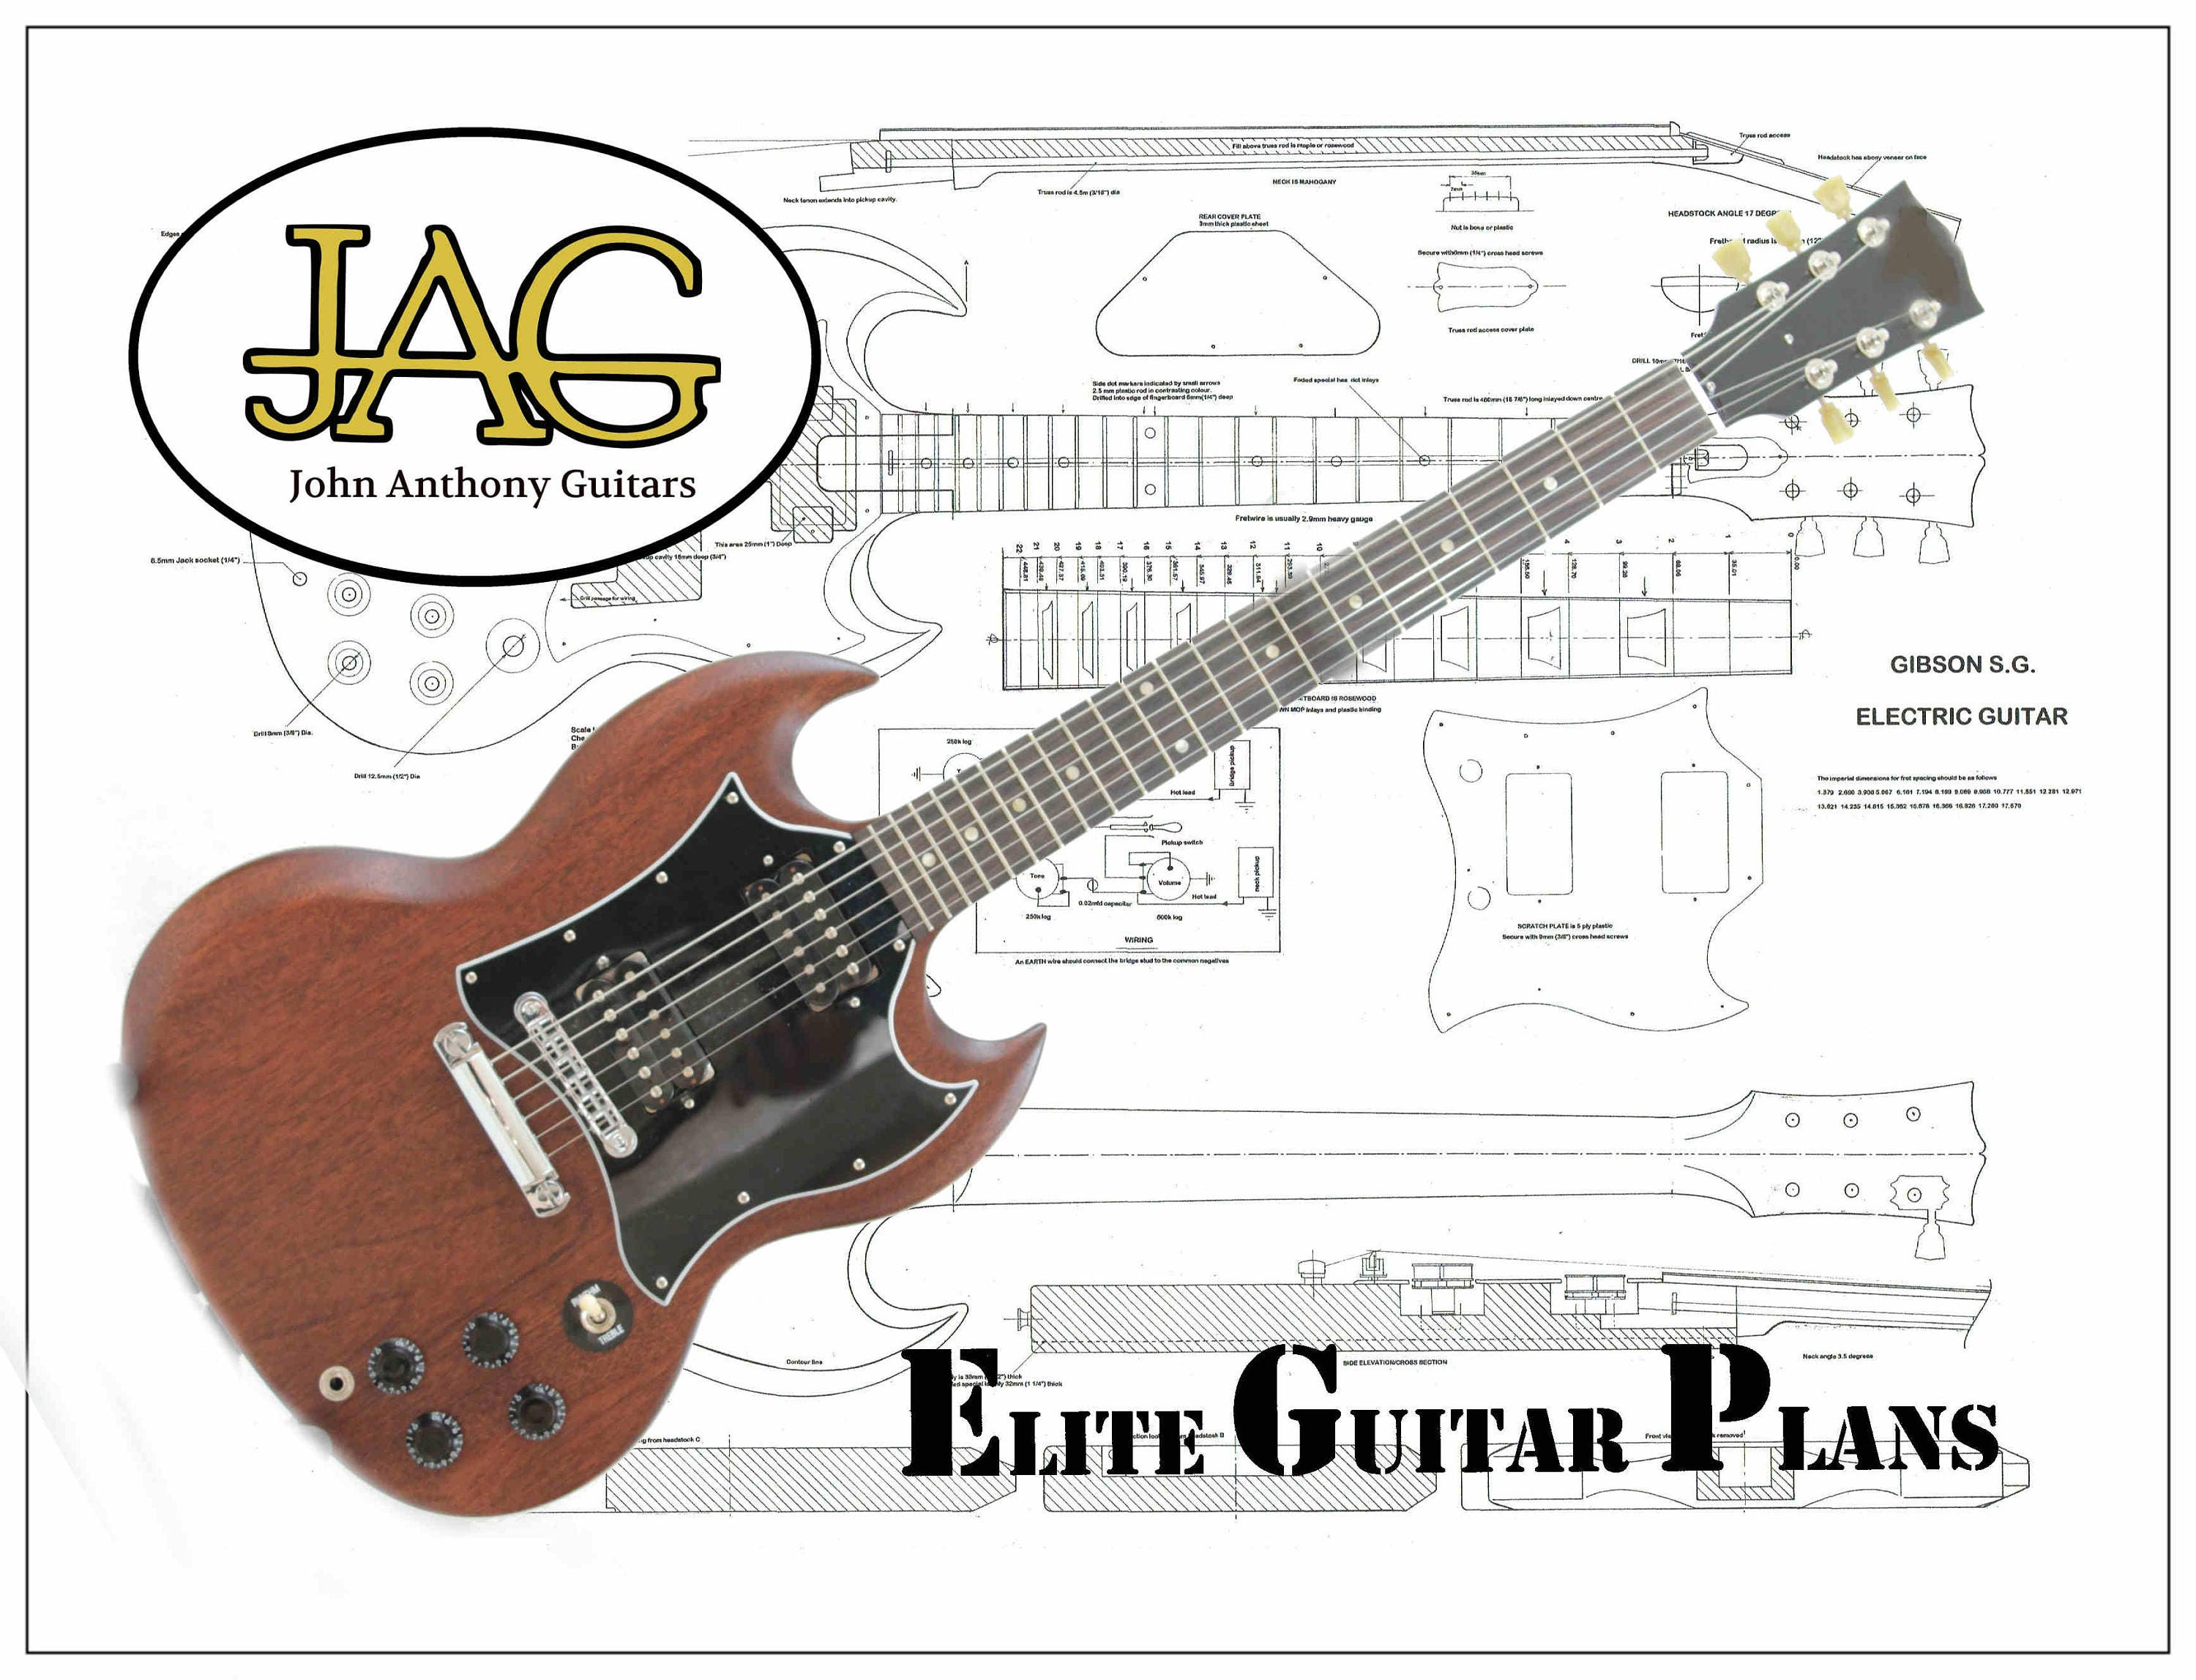 rolled plan to build s g electric guitar diy project or ideal etsy. Black Bedroom Furniture Sets. Home Design Ideas